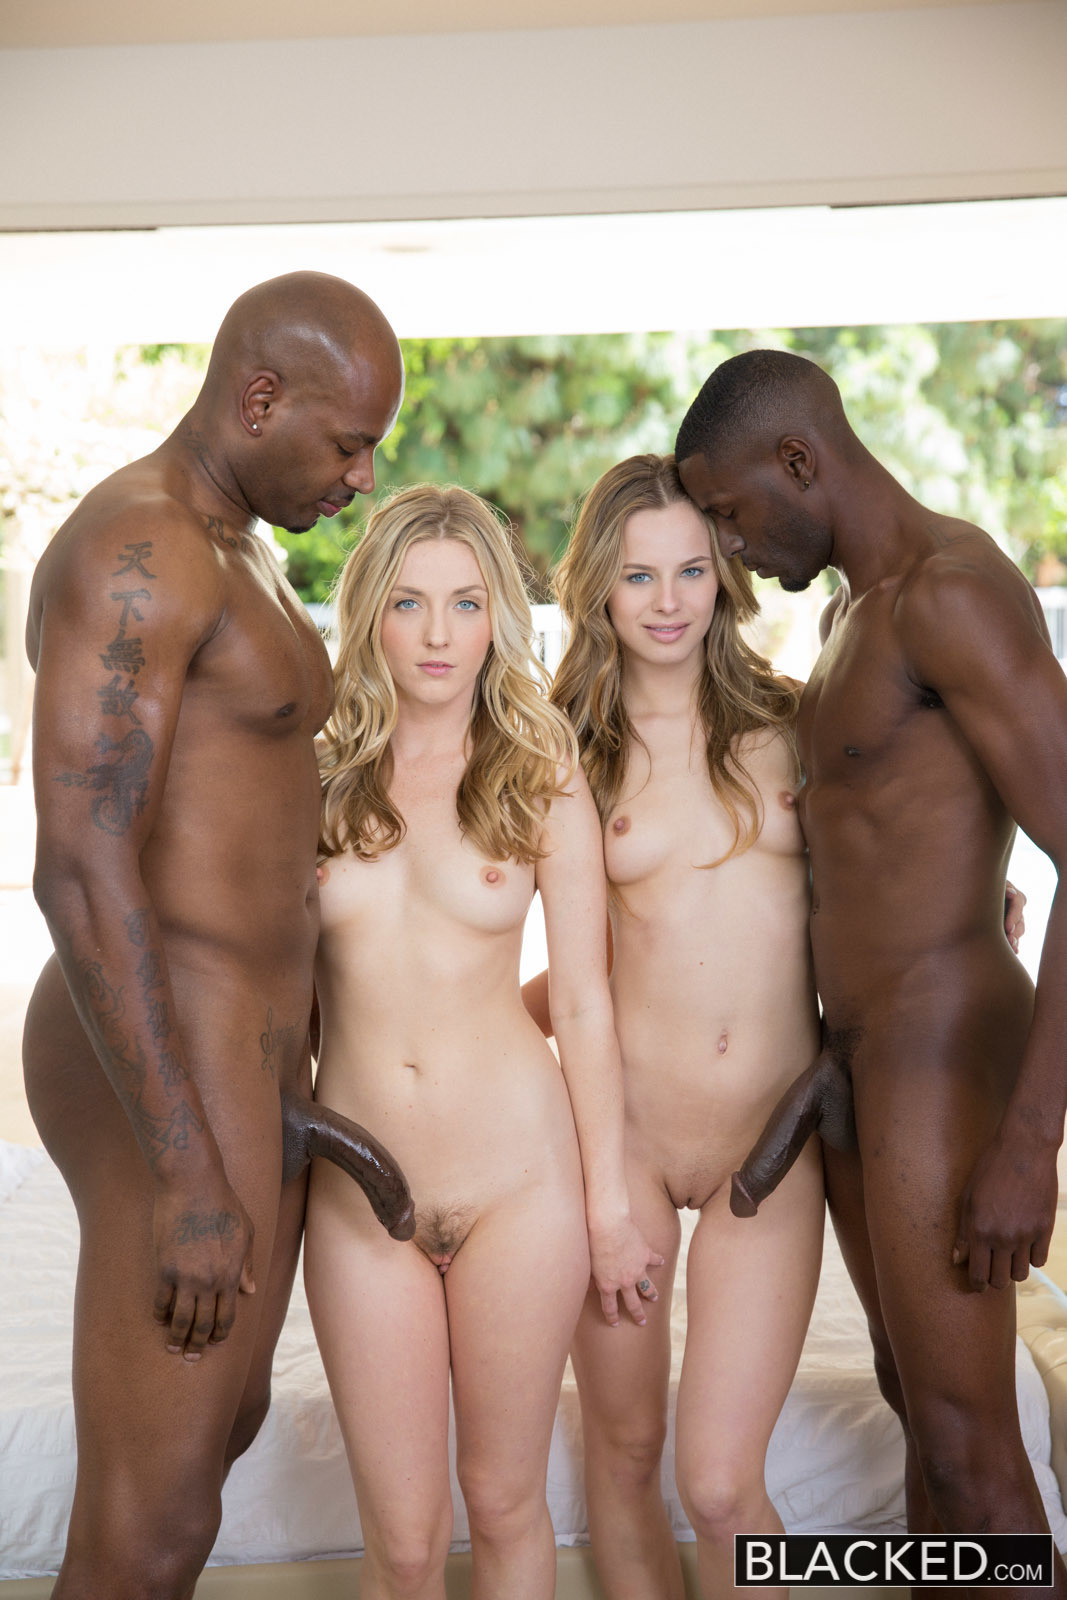 White Girl Sex Black Boy